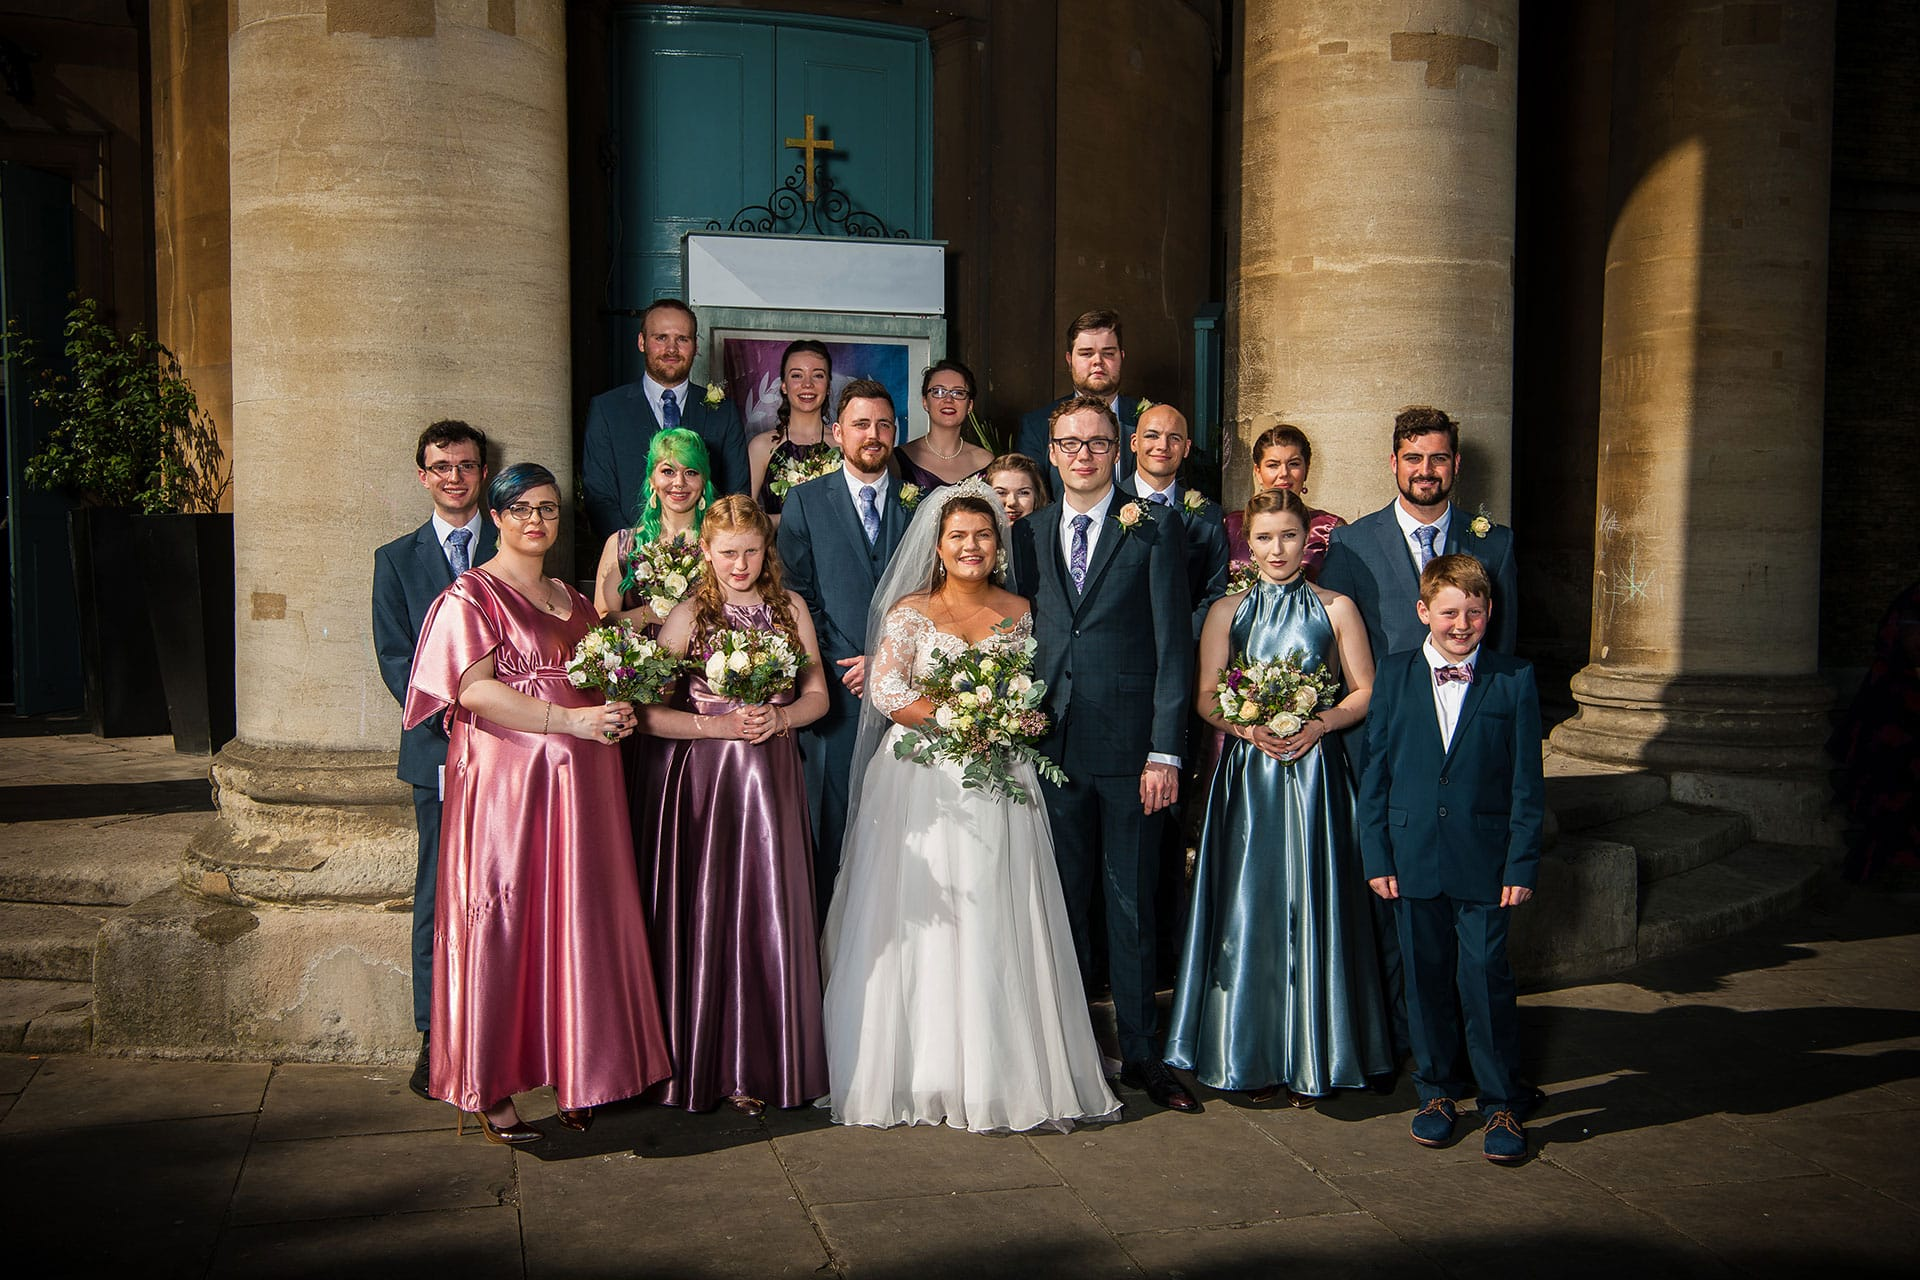 wedding party smiling as they have their photo taken outside the venue